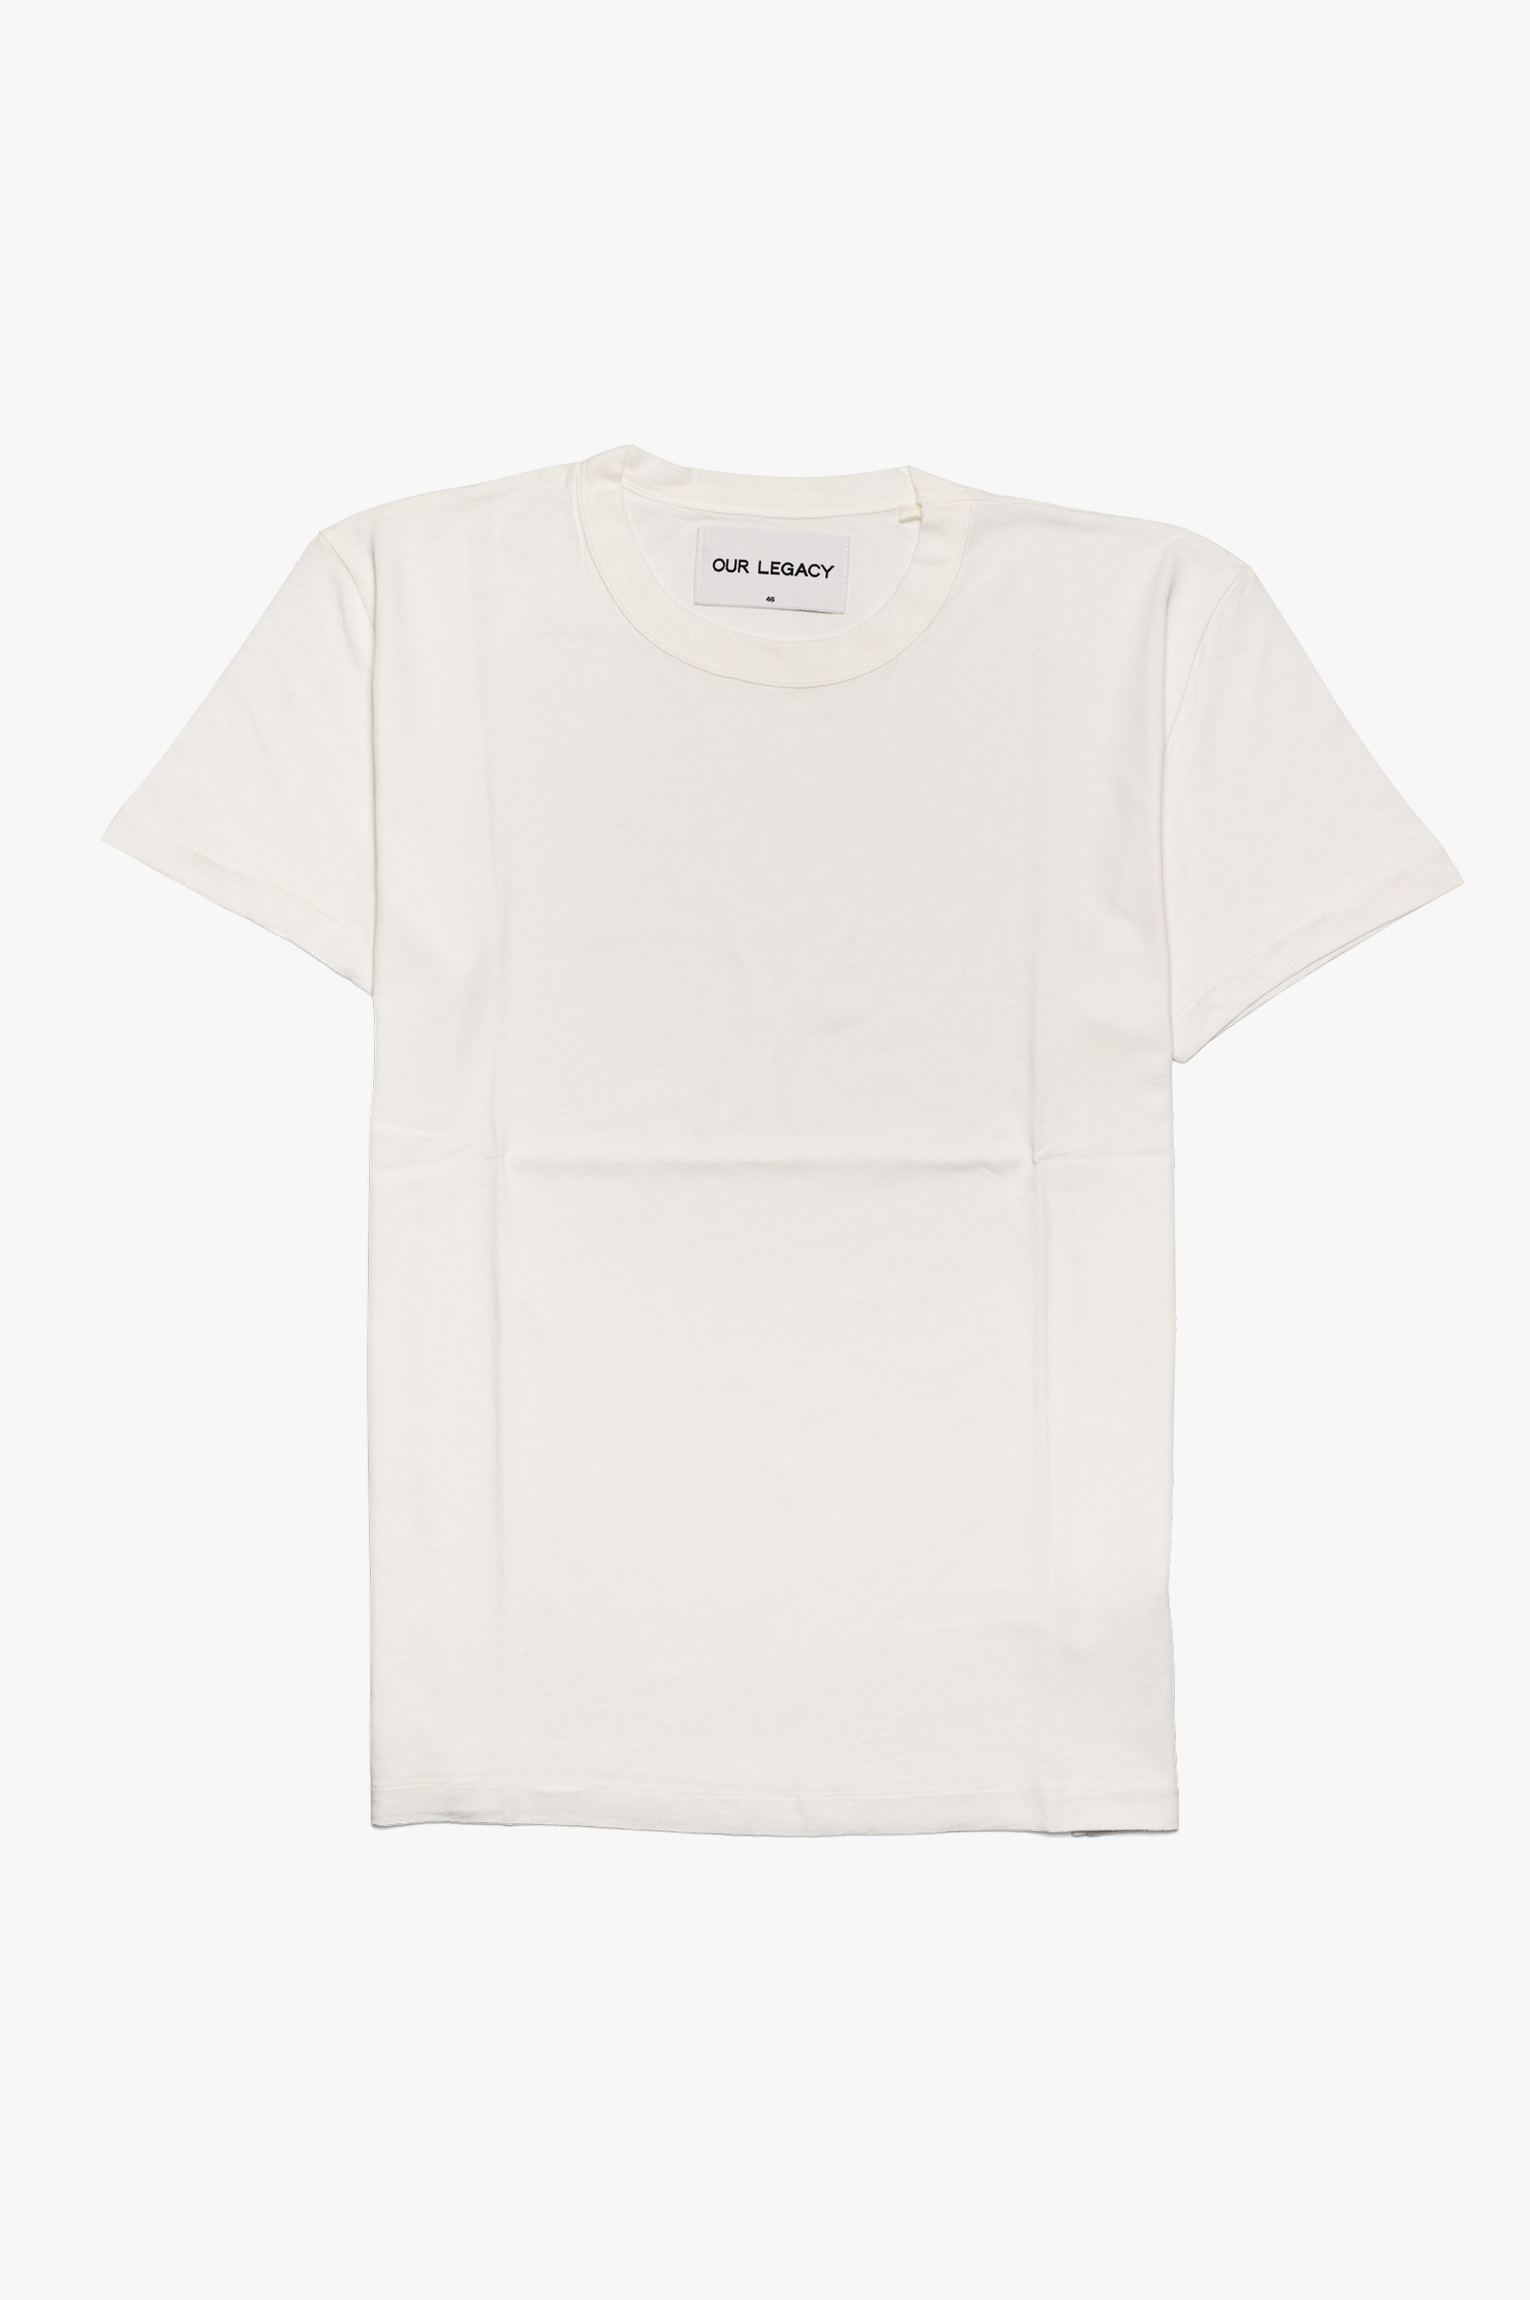 Perfect T-Shirt White Army Jersey